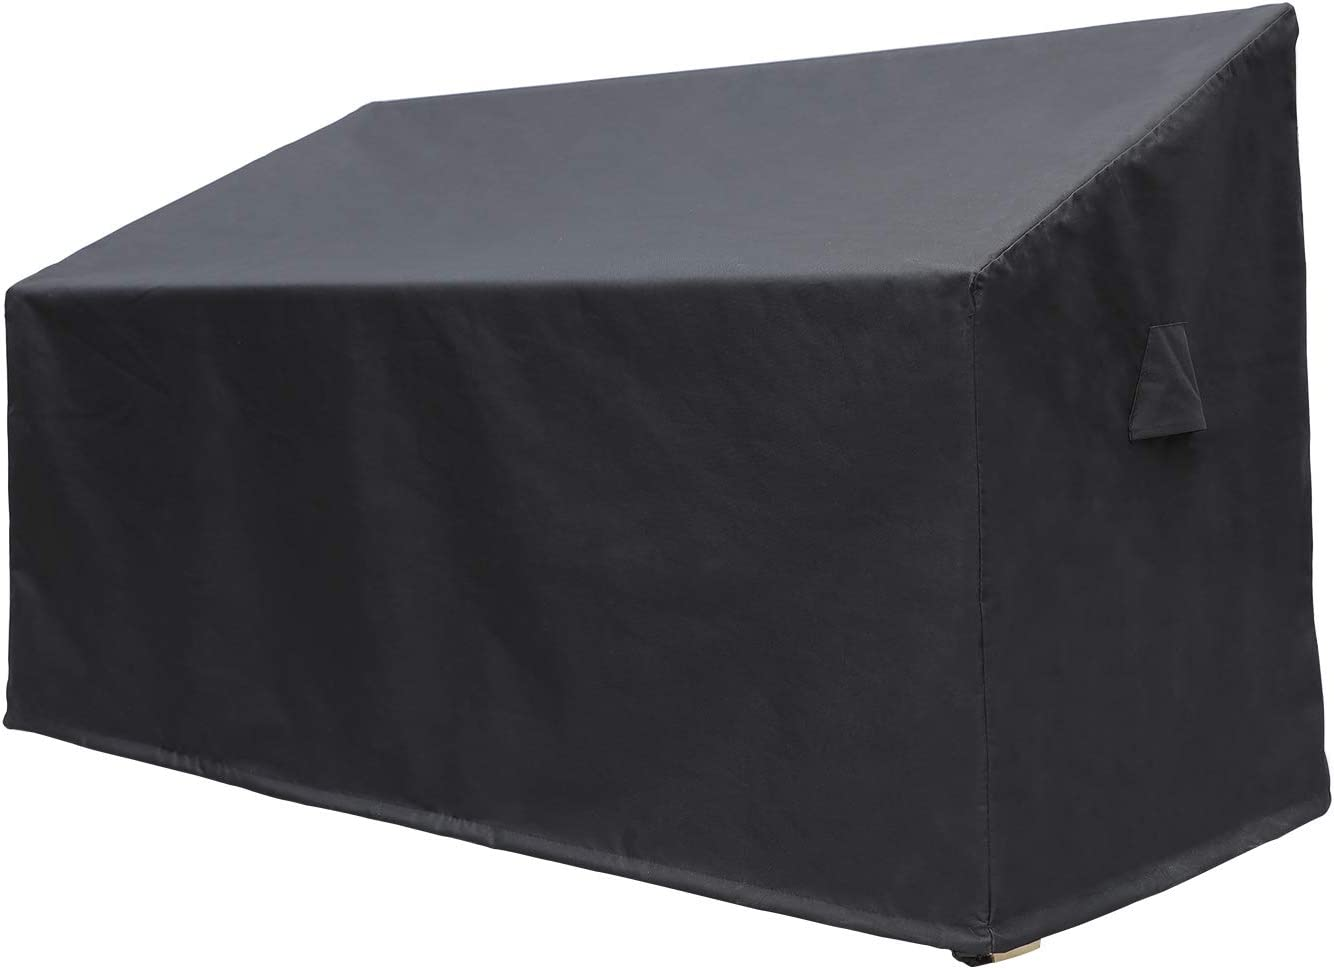 NEBULALAND Patio Cover 3-Seater Black Loveseat Cover 600D Heavy Duty Outdoor Lounge Sofa Cover, Lawn Patio Furniture Covers, 100% Waterproof Furniture Cover with Air Vent, Outdoor Furniture